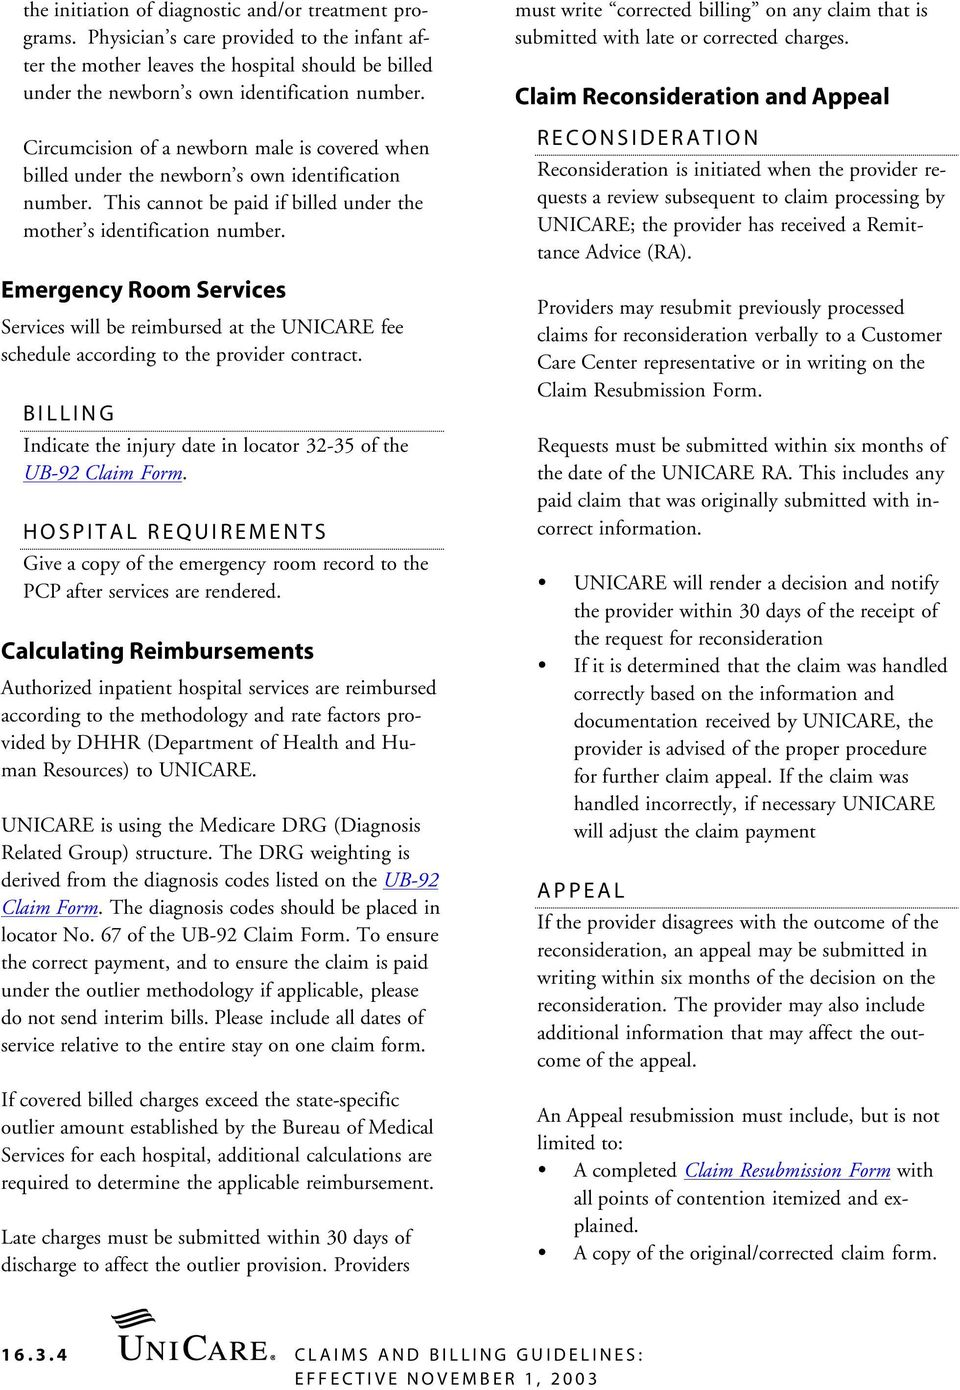 Emergency Room Services Services will be reimbursed at the UNICARE fee schedule according to the provider contract. BILLING Indicate the injury date in locator 32-35 of the UB-92 Claim Form.